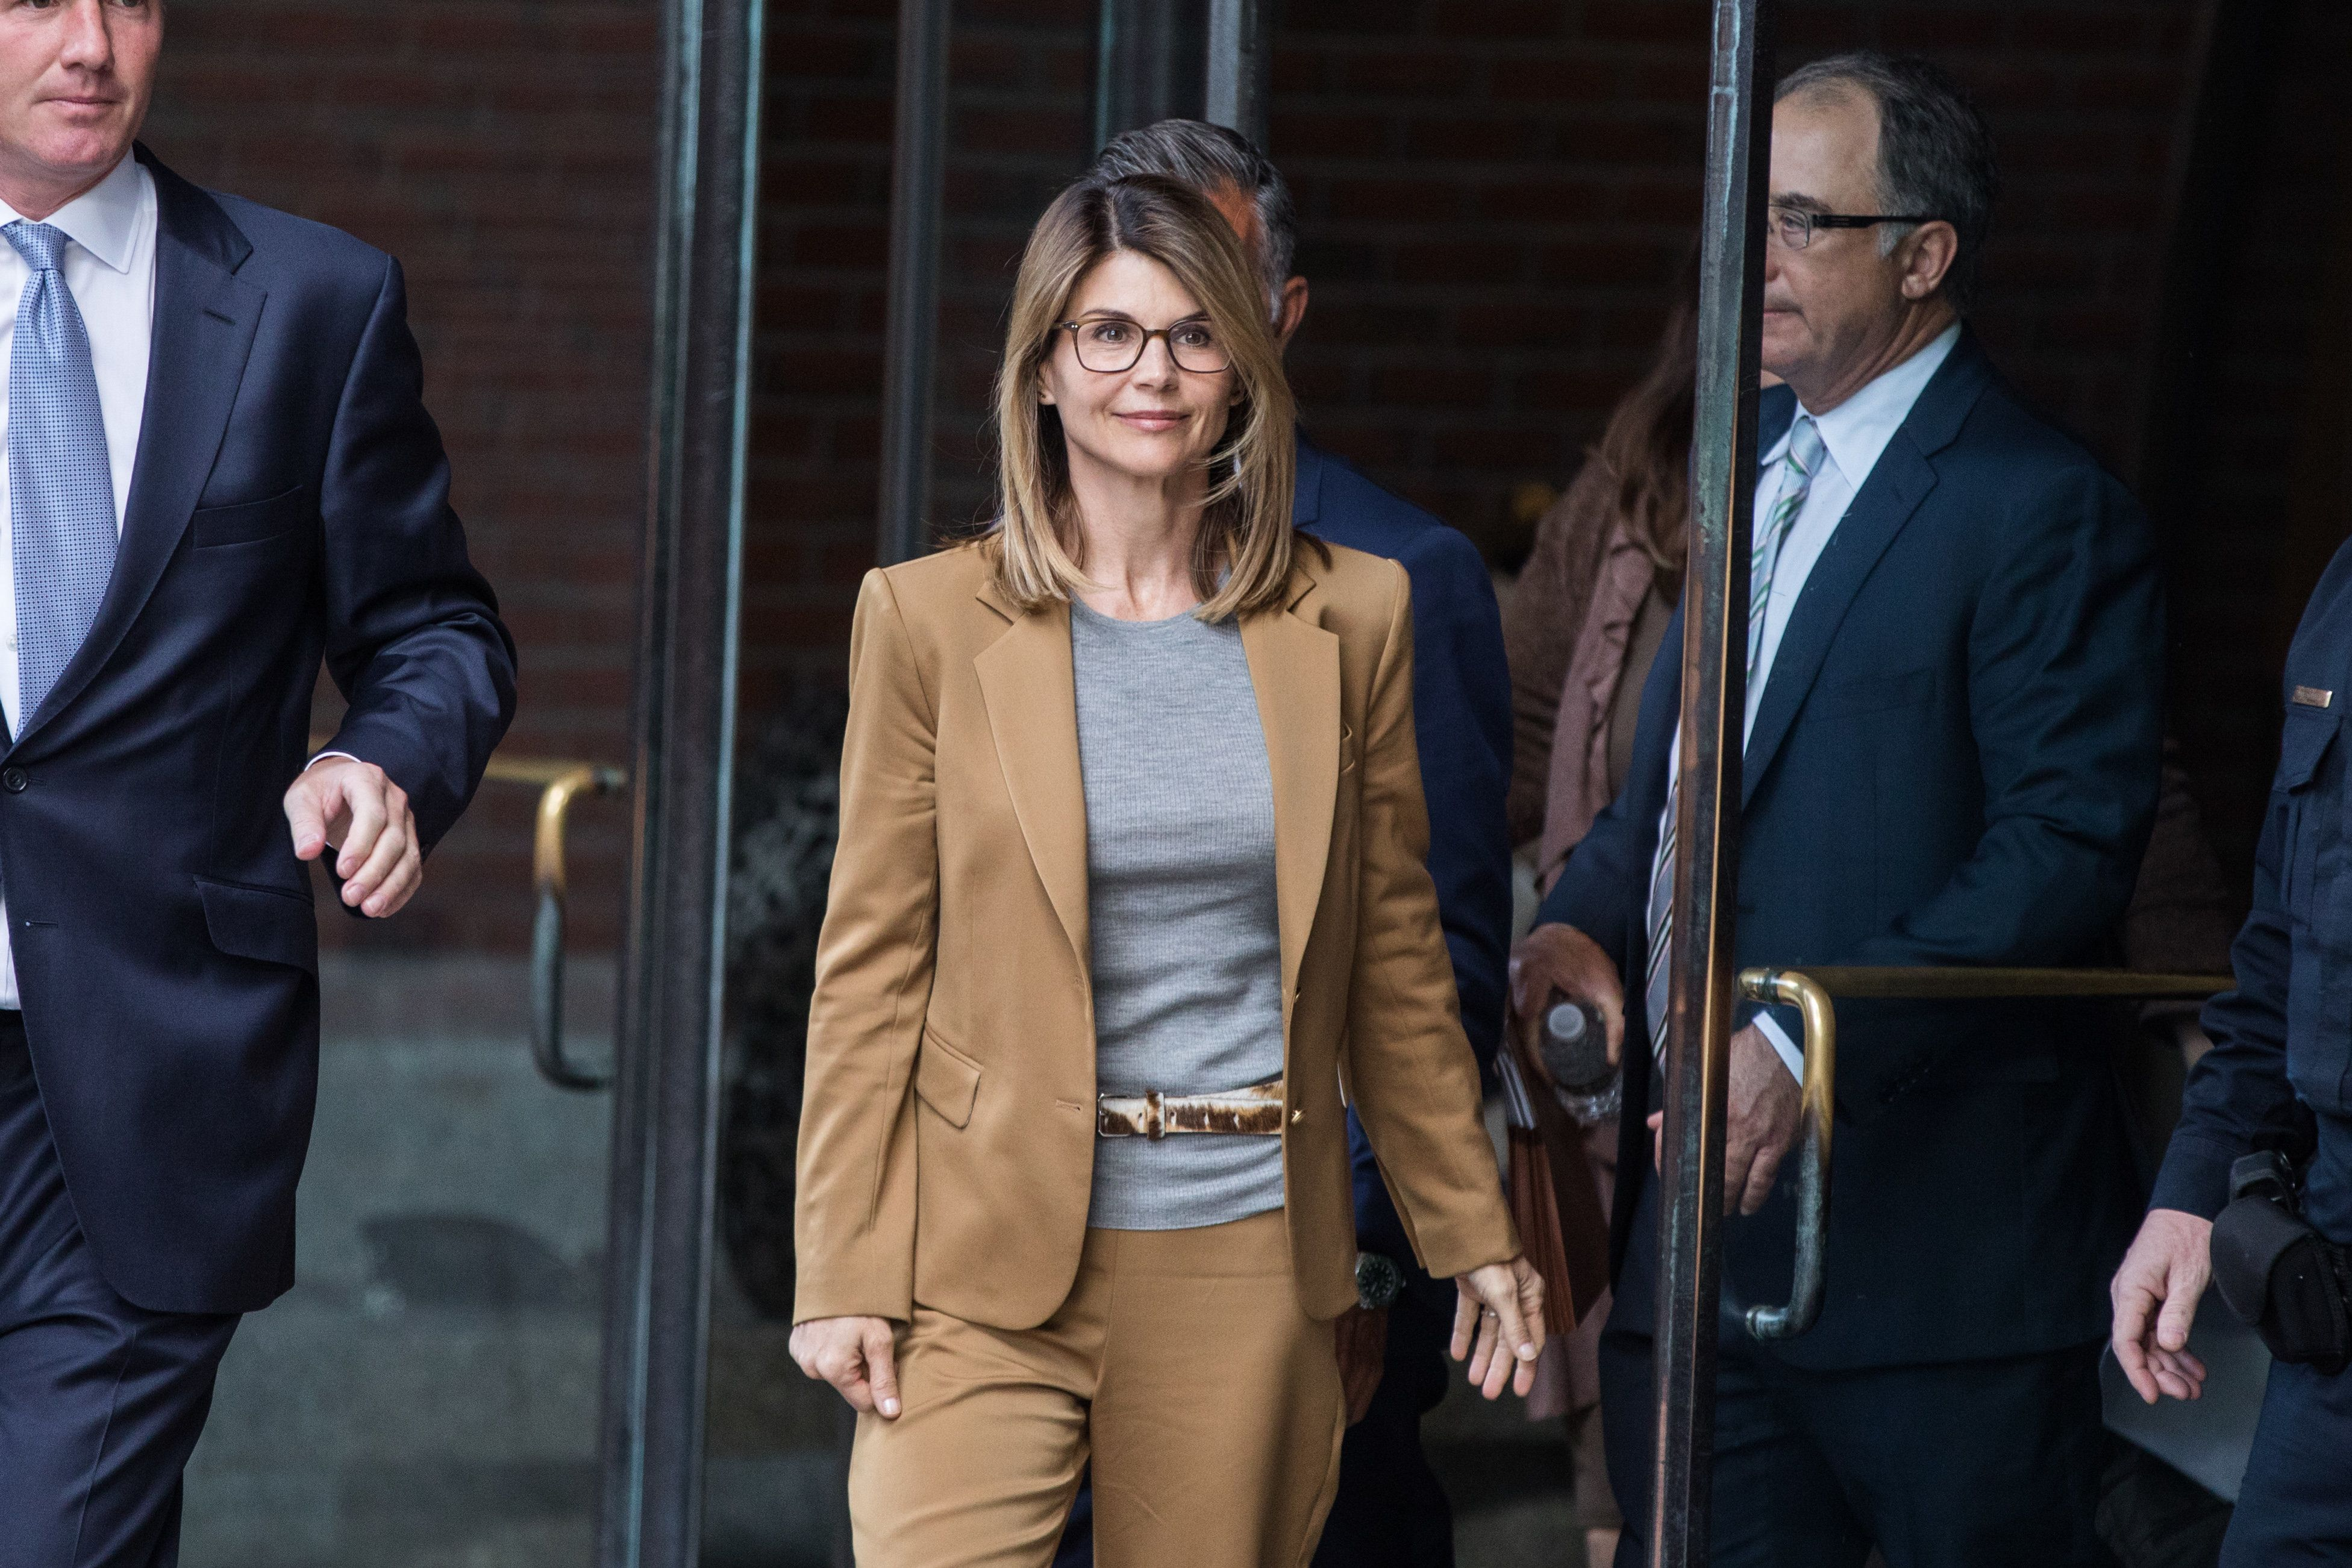 Actress Lori Loughlin, center, exits federal court in Boston, Massachusetts, U.S., on Wednesday, April 3, 2019. She and her h